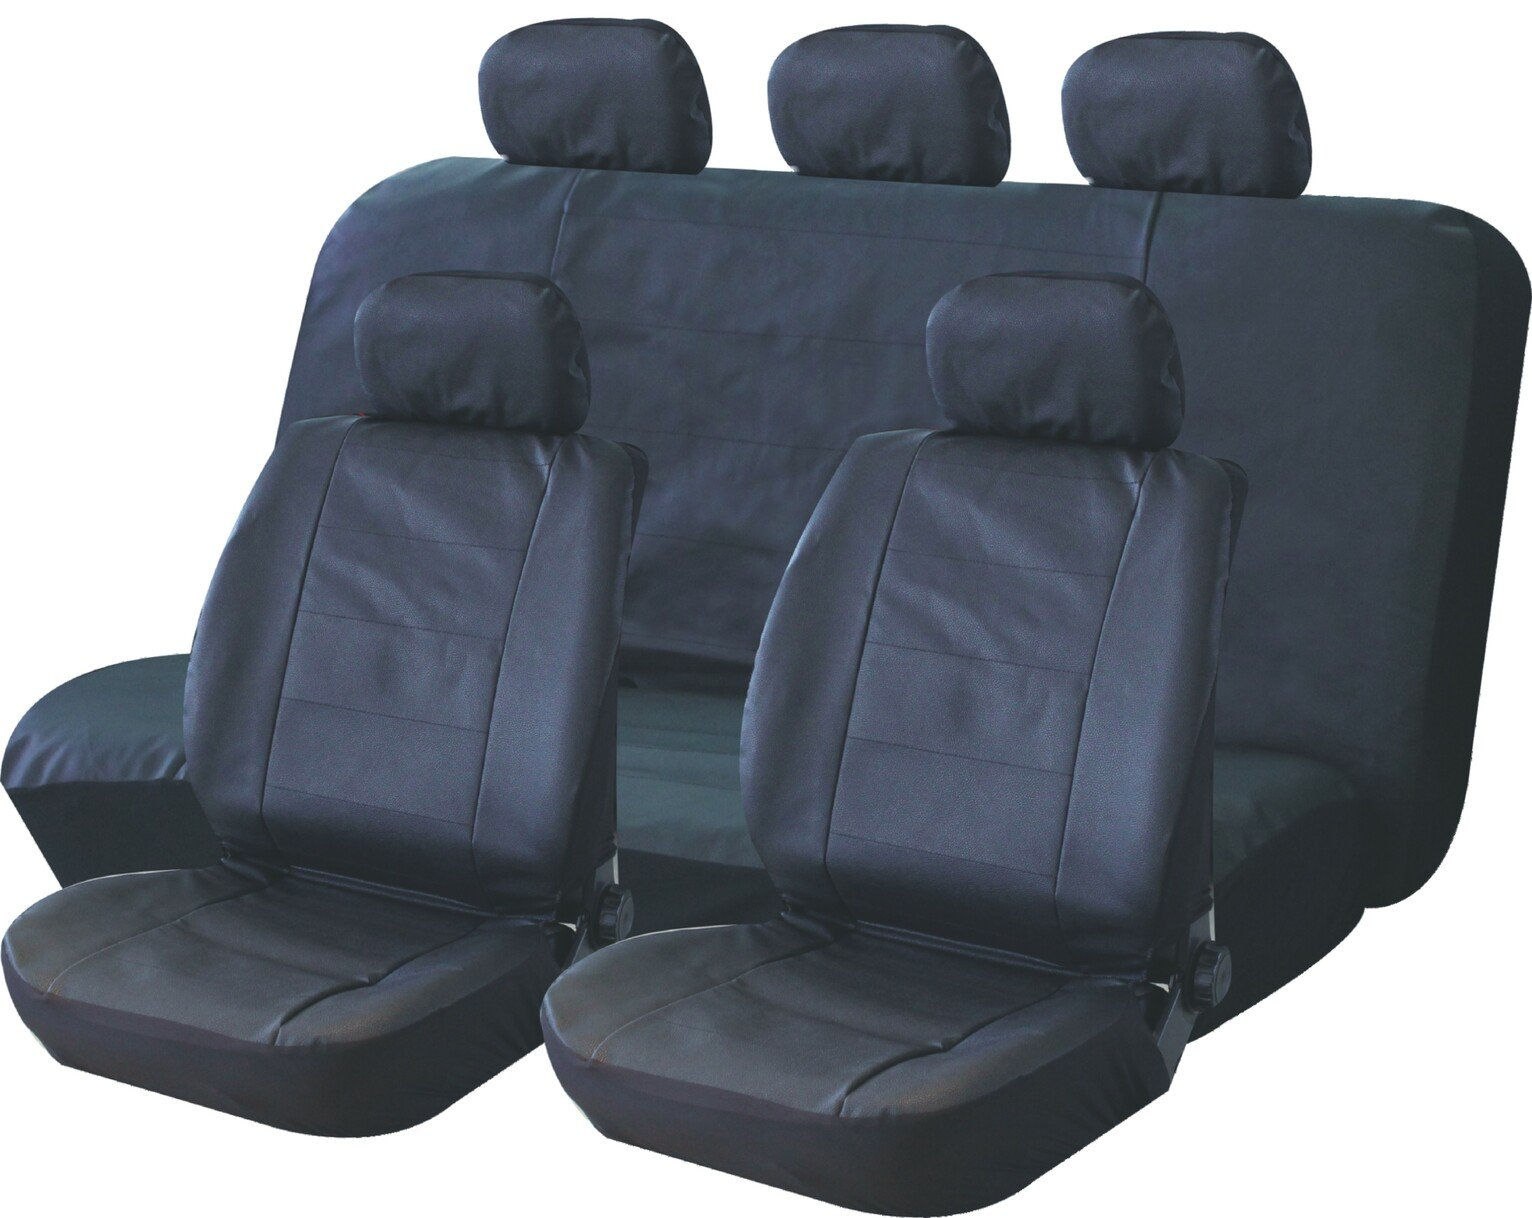 Streetwize Leather Look Complete Car Seat Cover Set